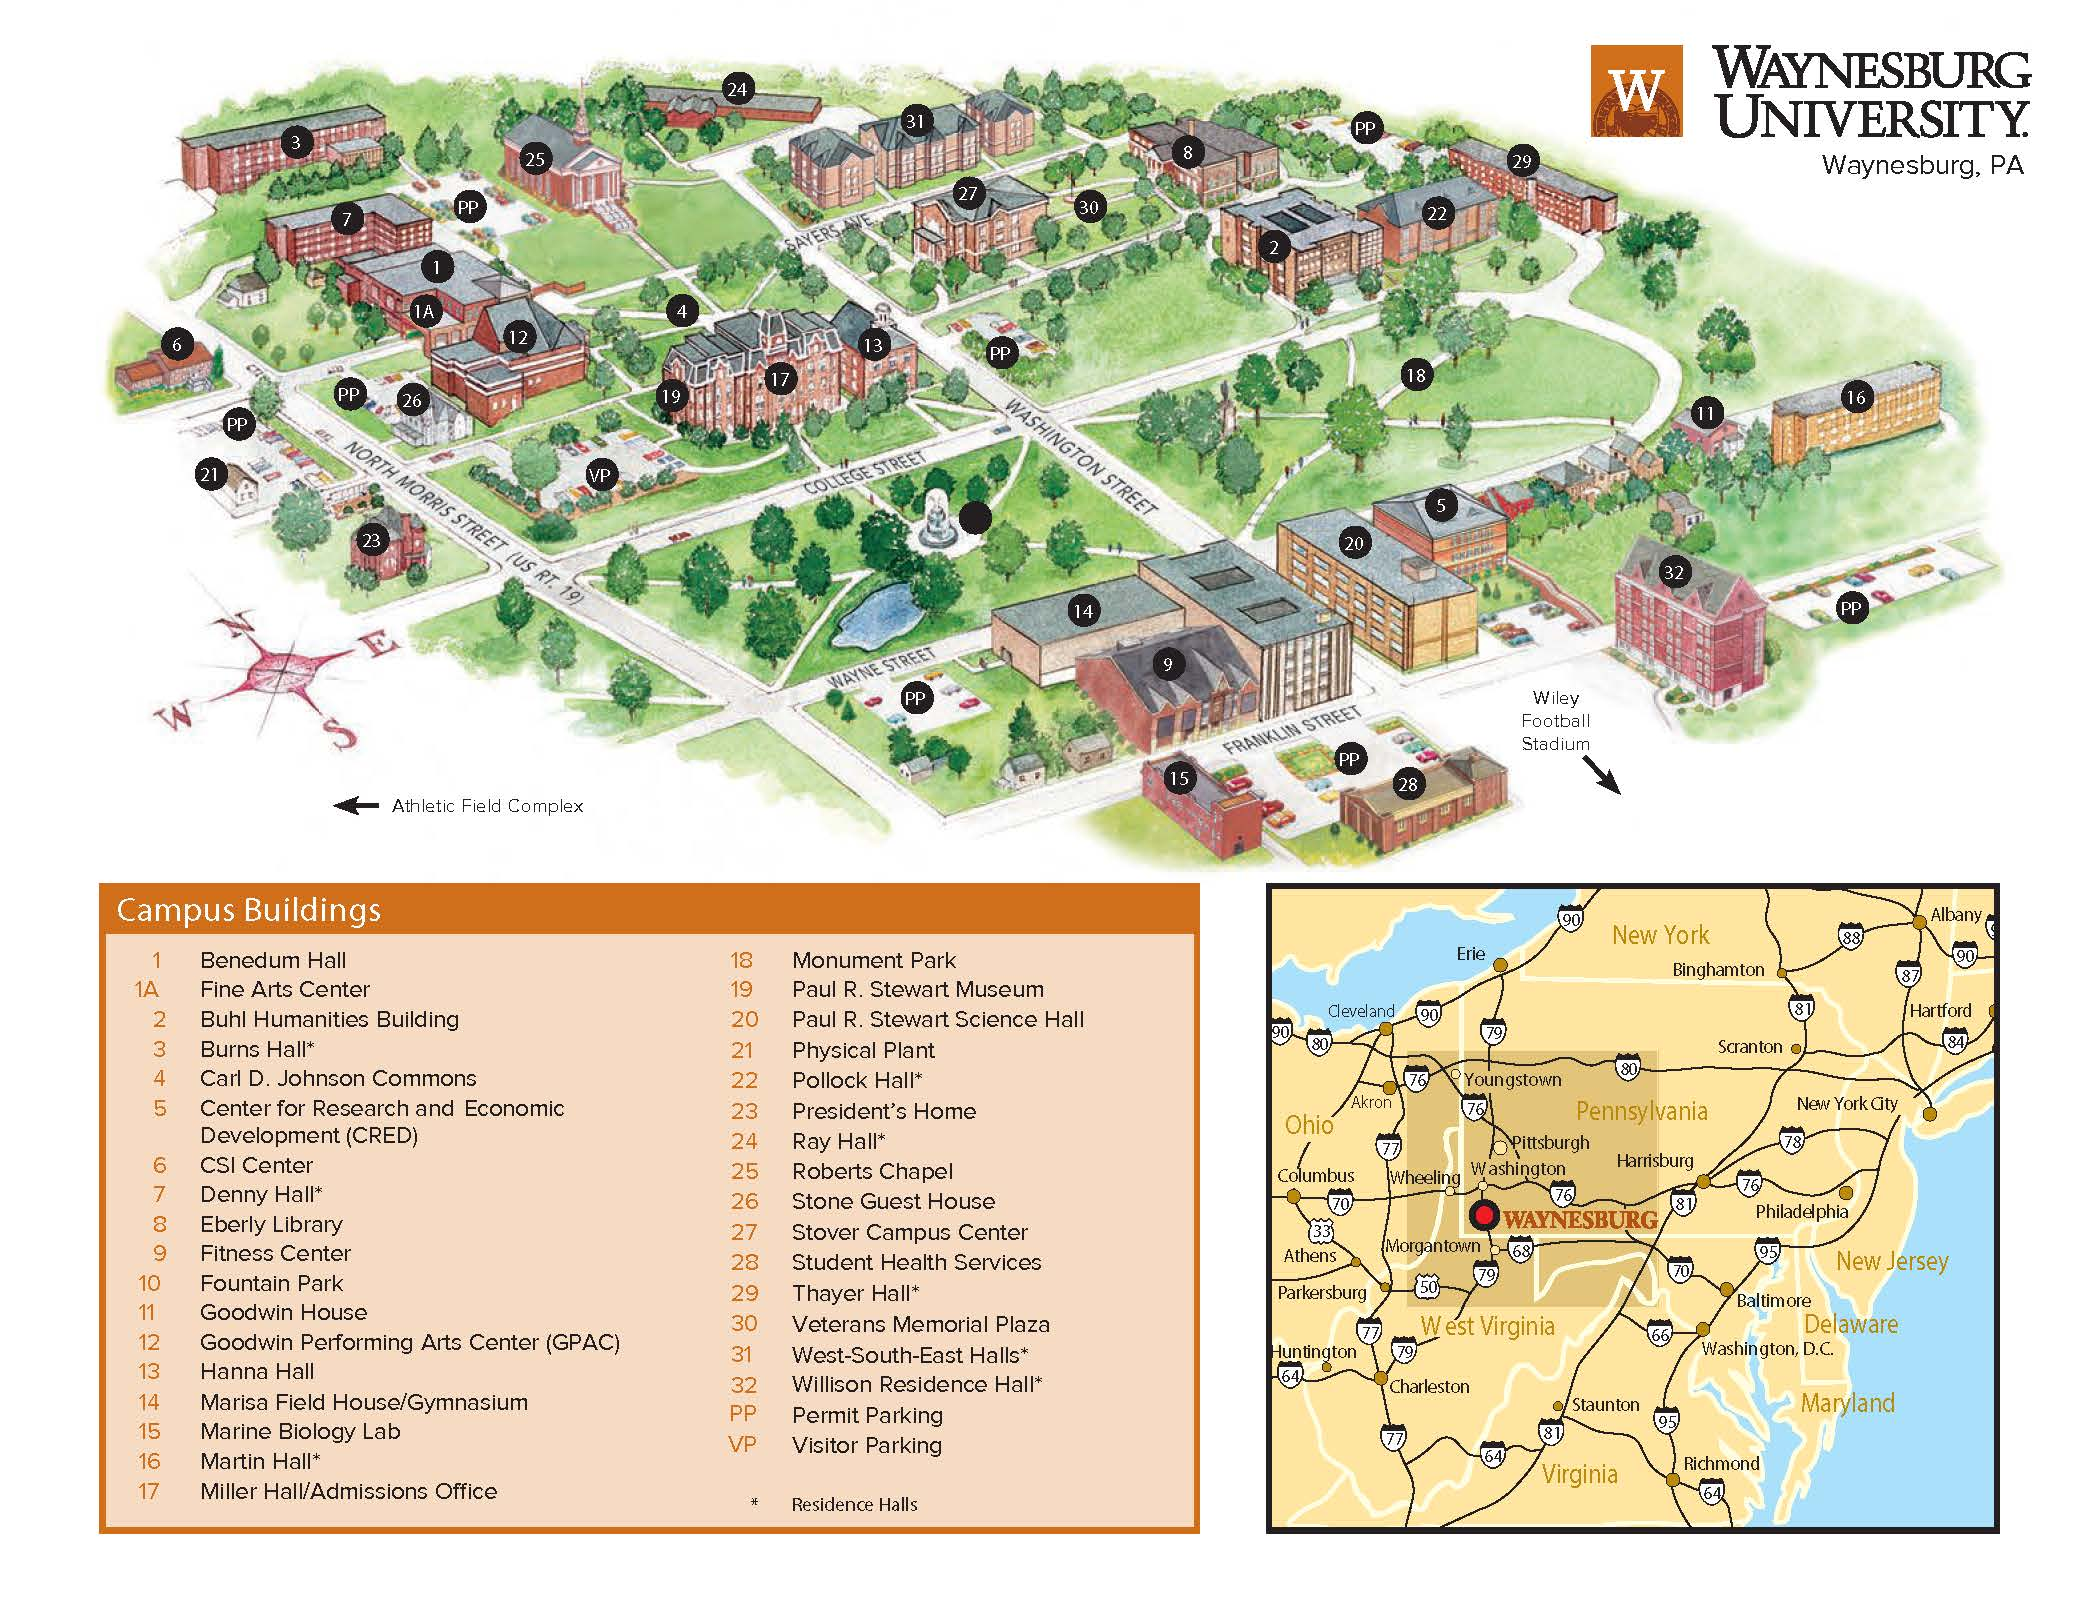 Waynesburg University | Locations and Campus Map